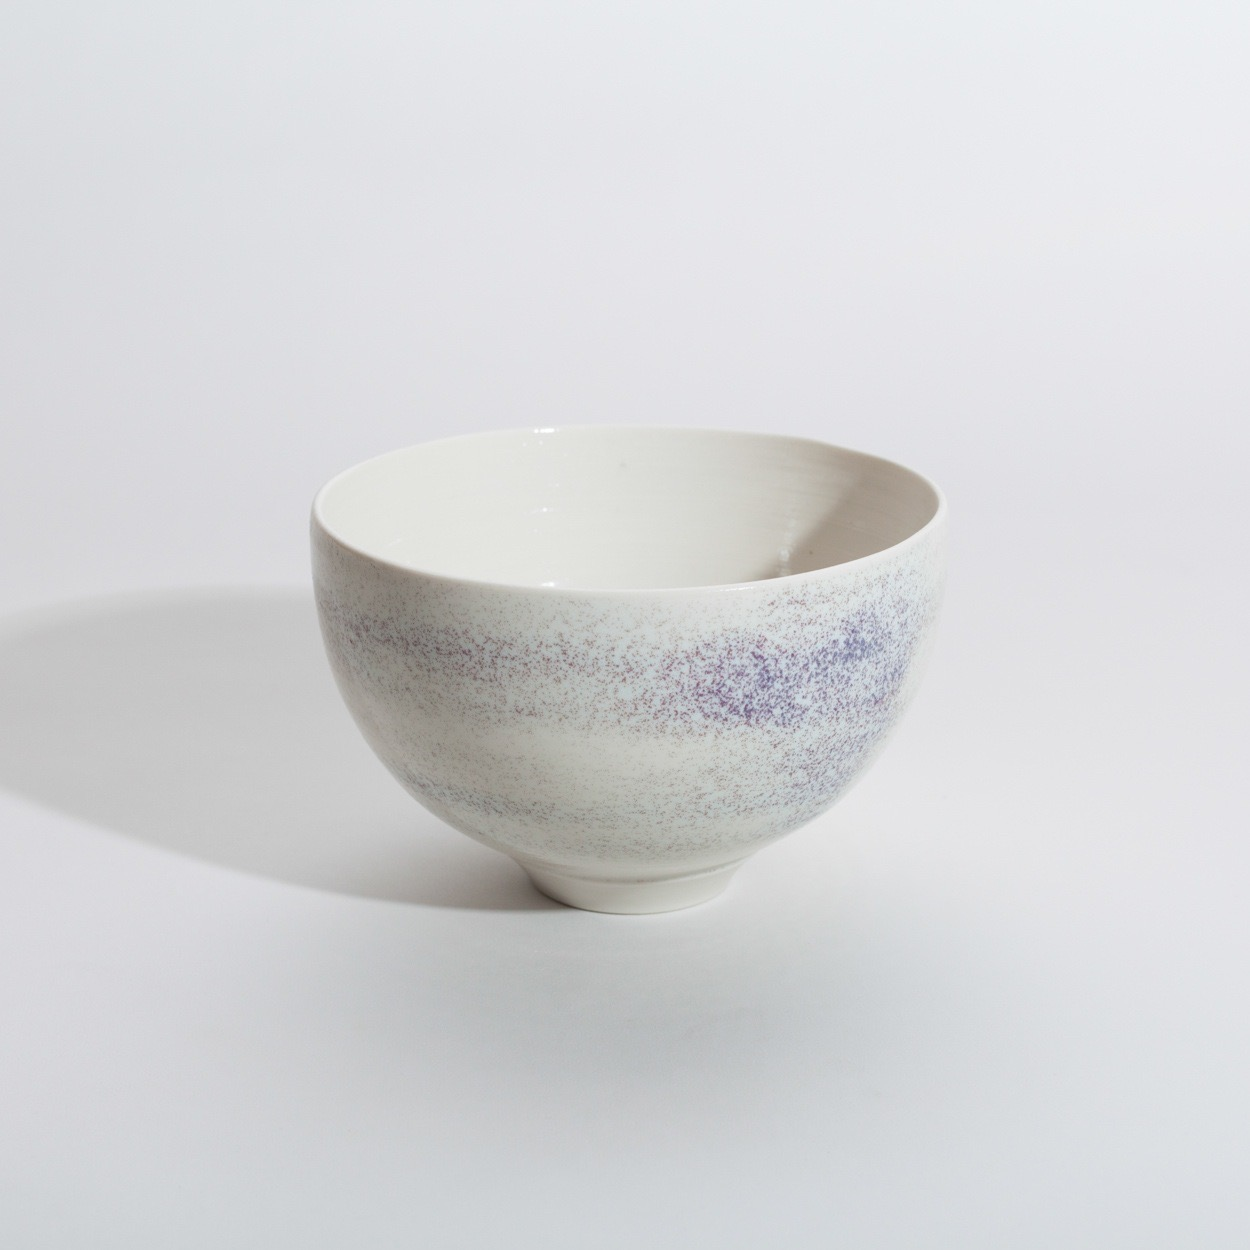 Porcelain bowl with purple speckles